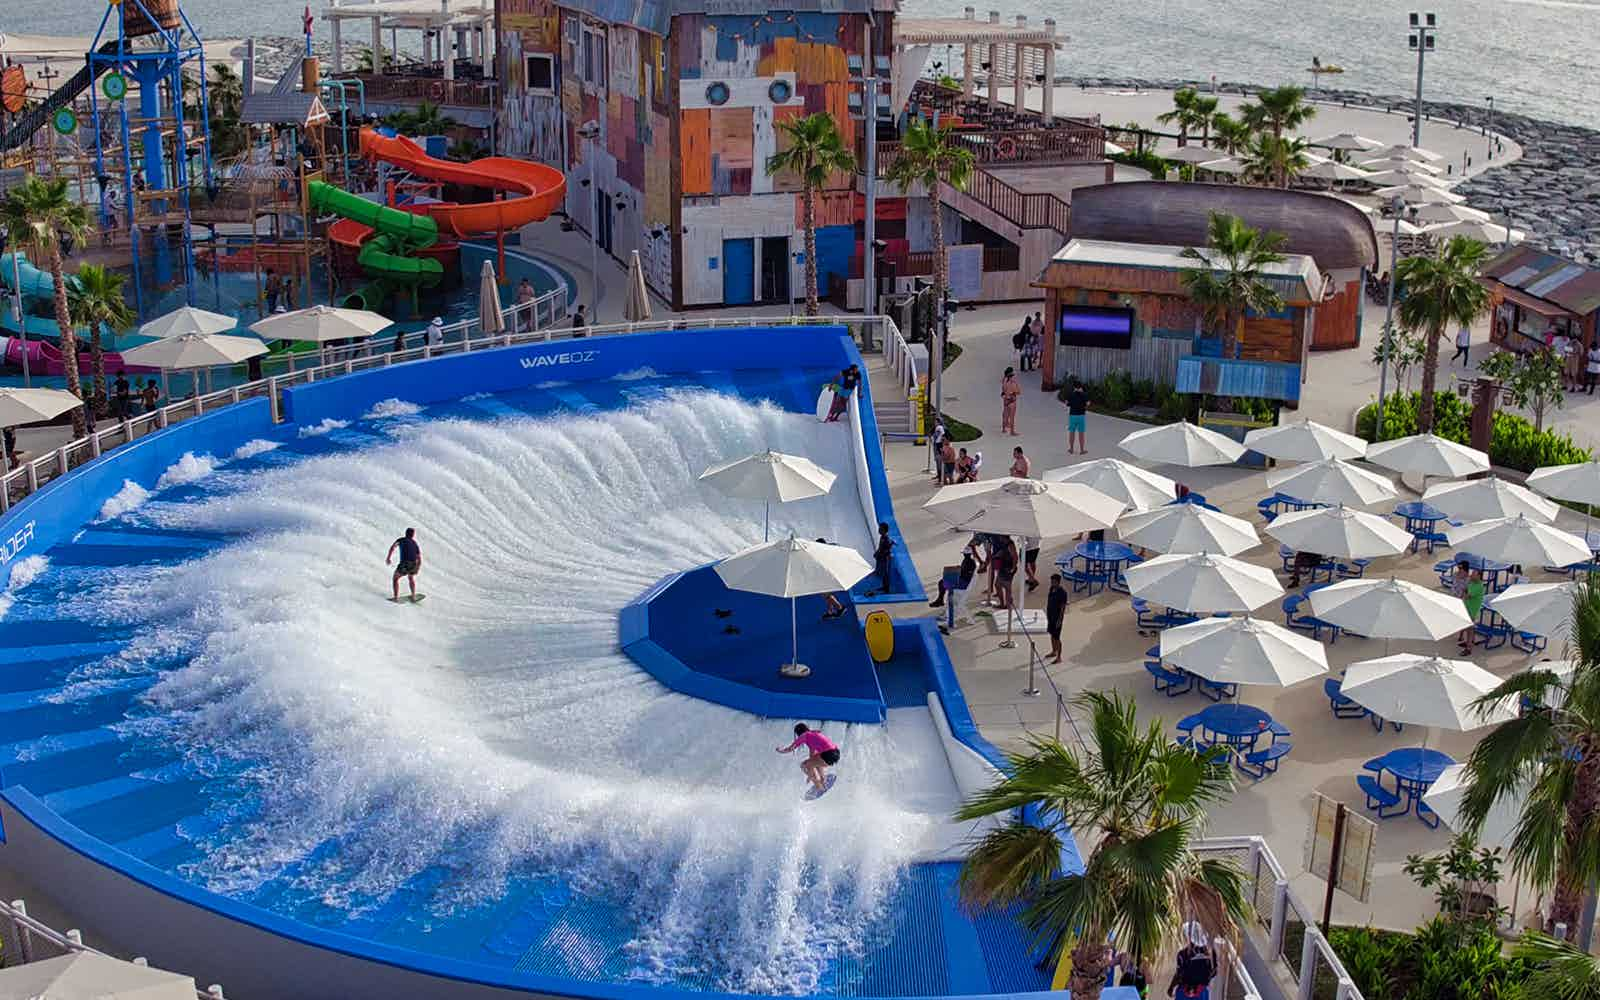 Things to do for kids in Dubai